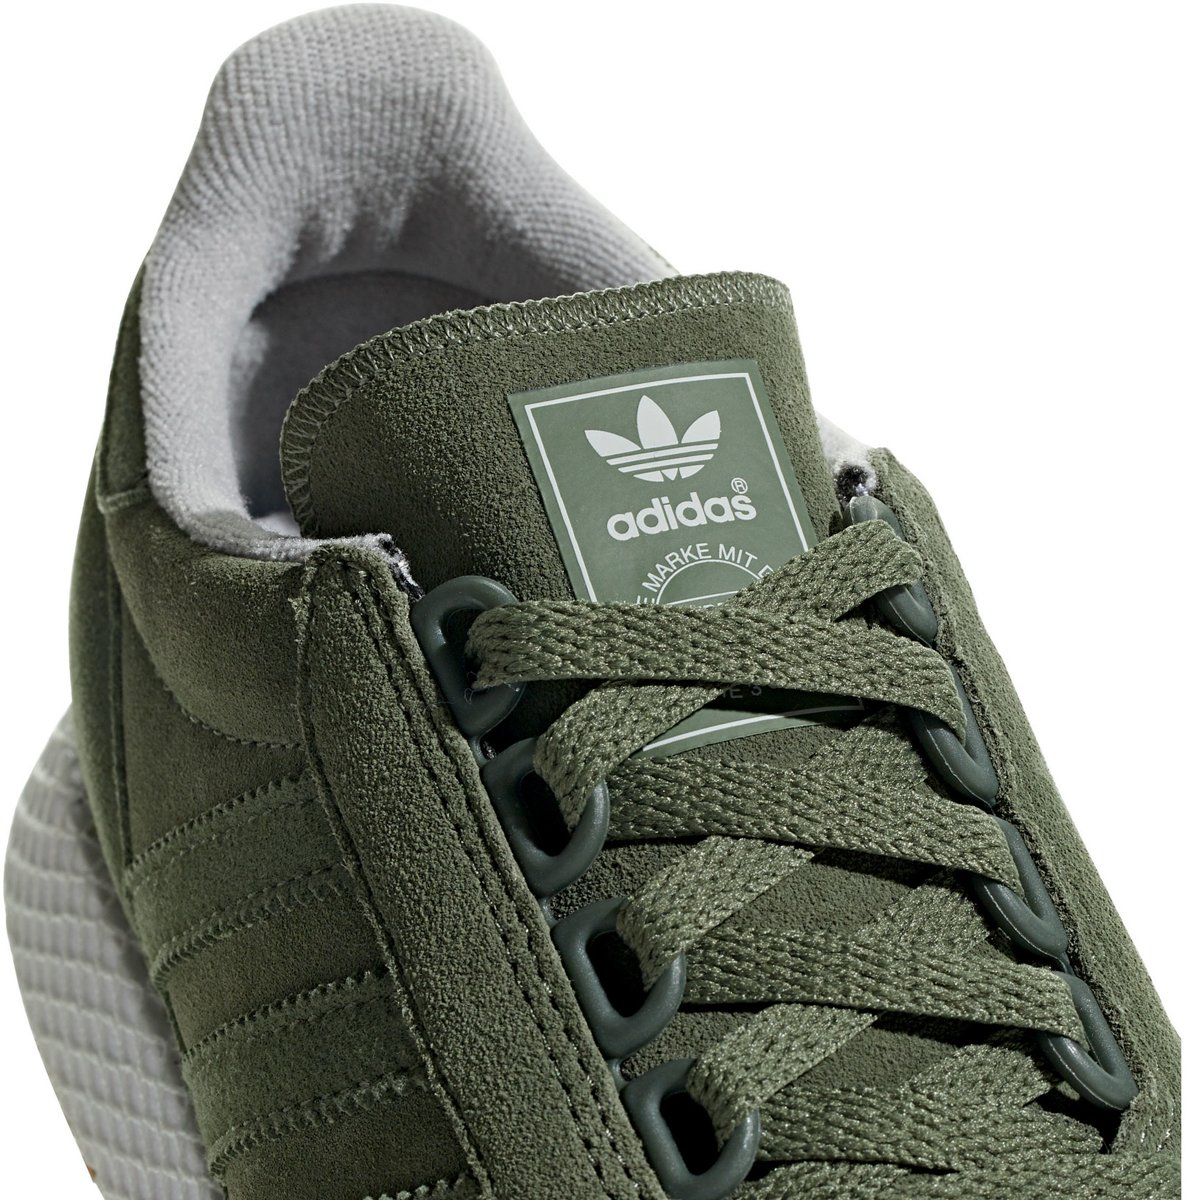 bol.com | adidas Forest Grove Sneakers - Maat 38 - Unisex ...